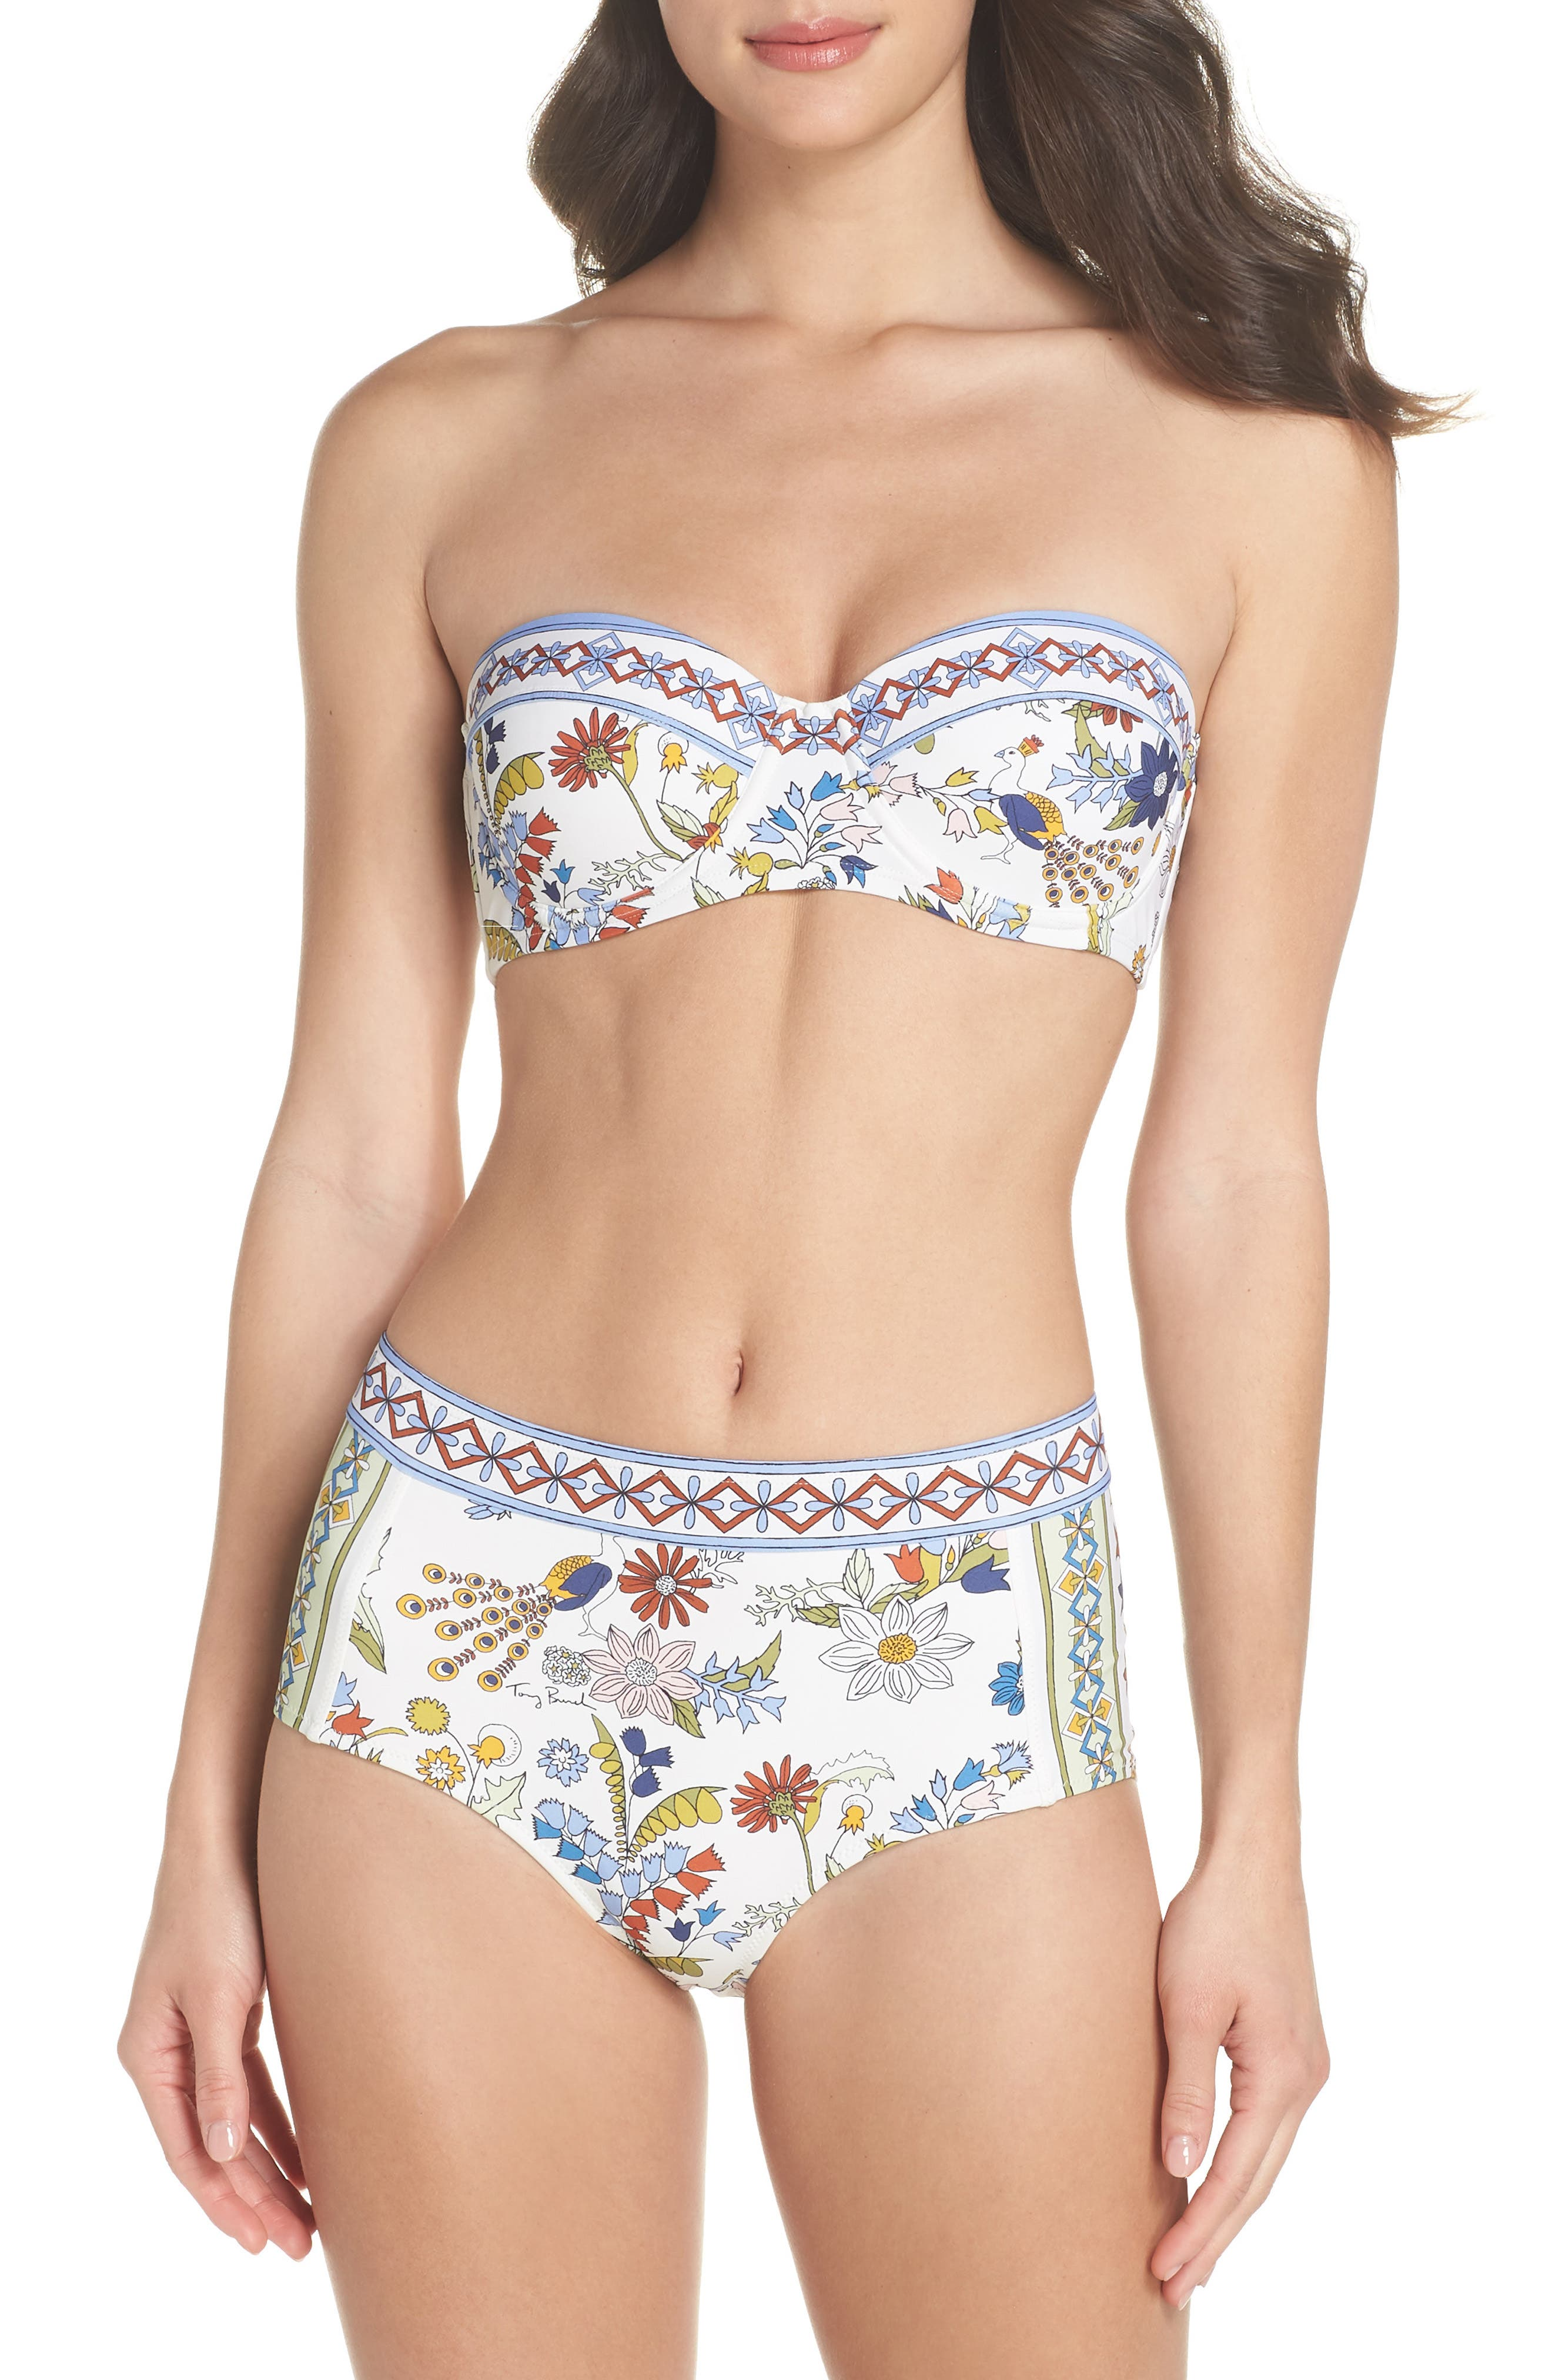 Meadow Folly Bikini Top,                             Alternate thumbnail 8, color,                             900